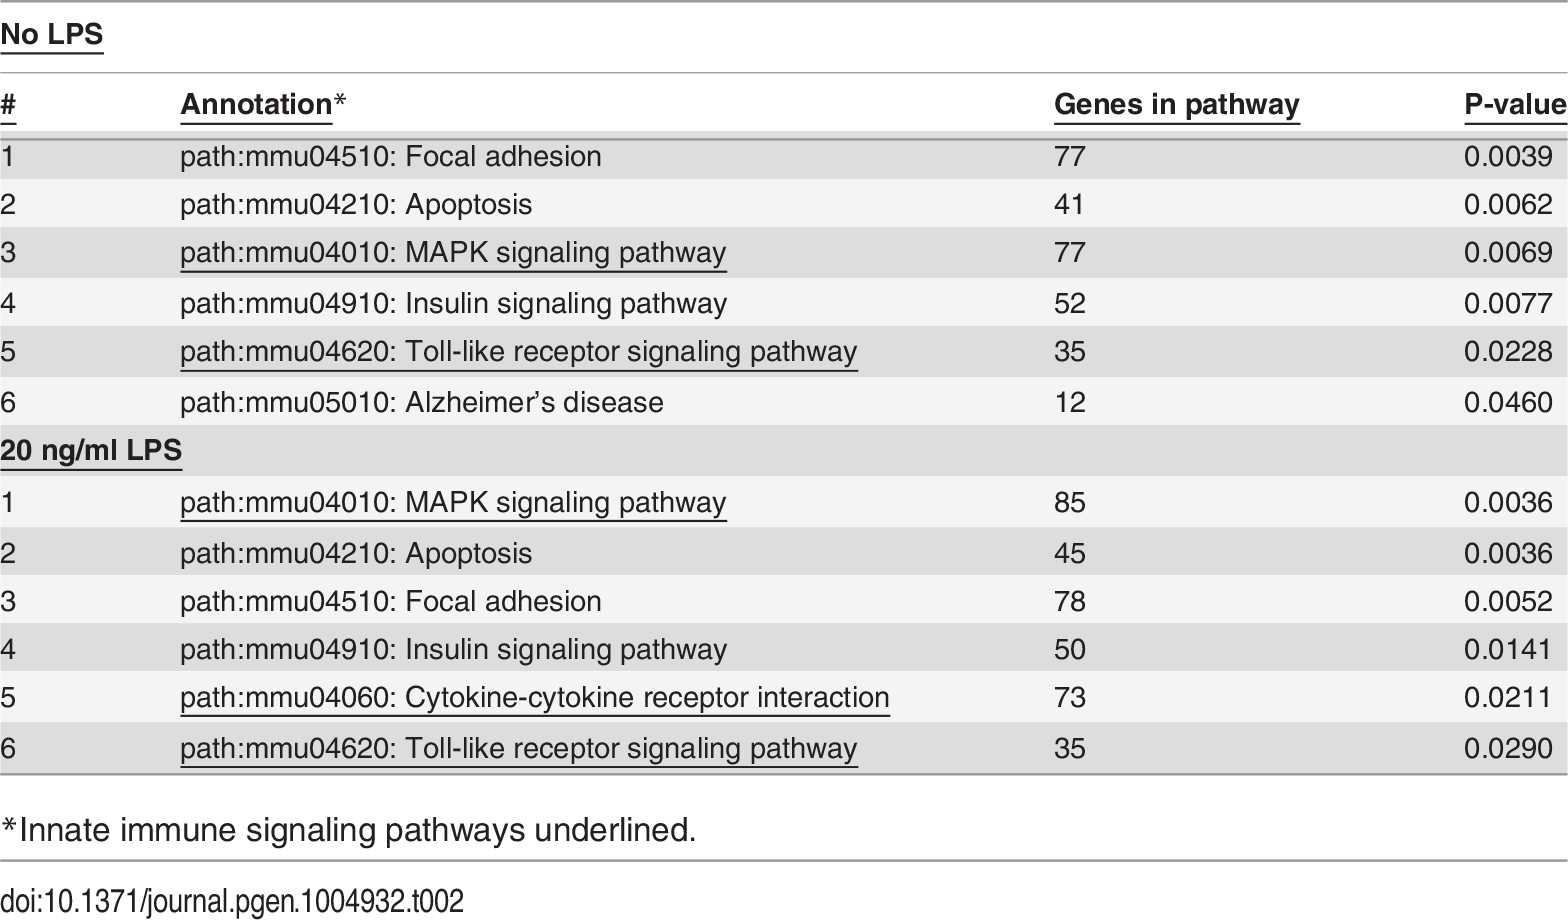 Pathways affected by SF3a1 inhibition.